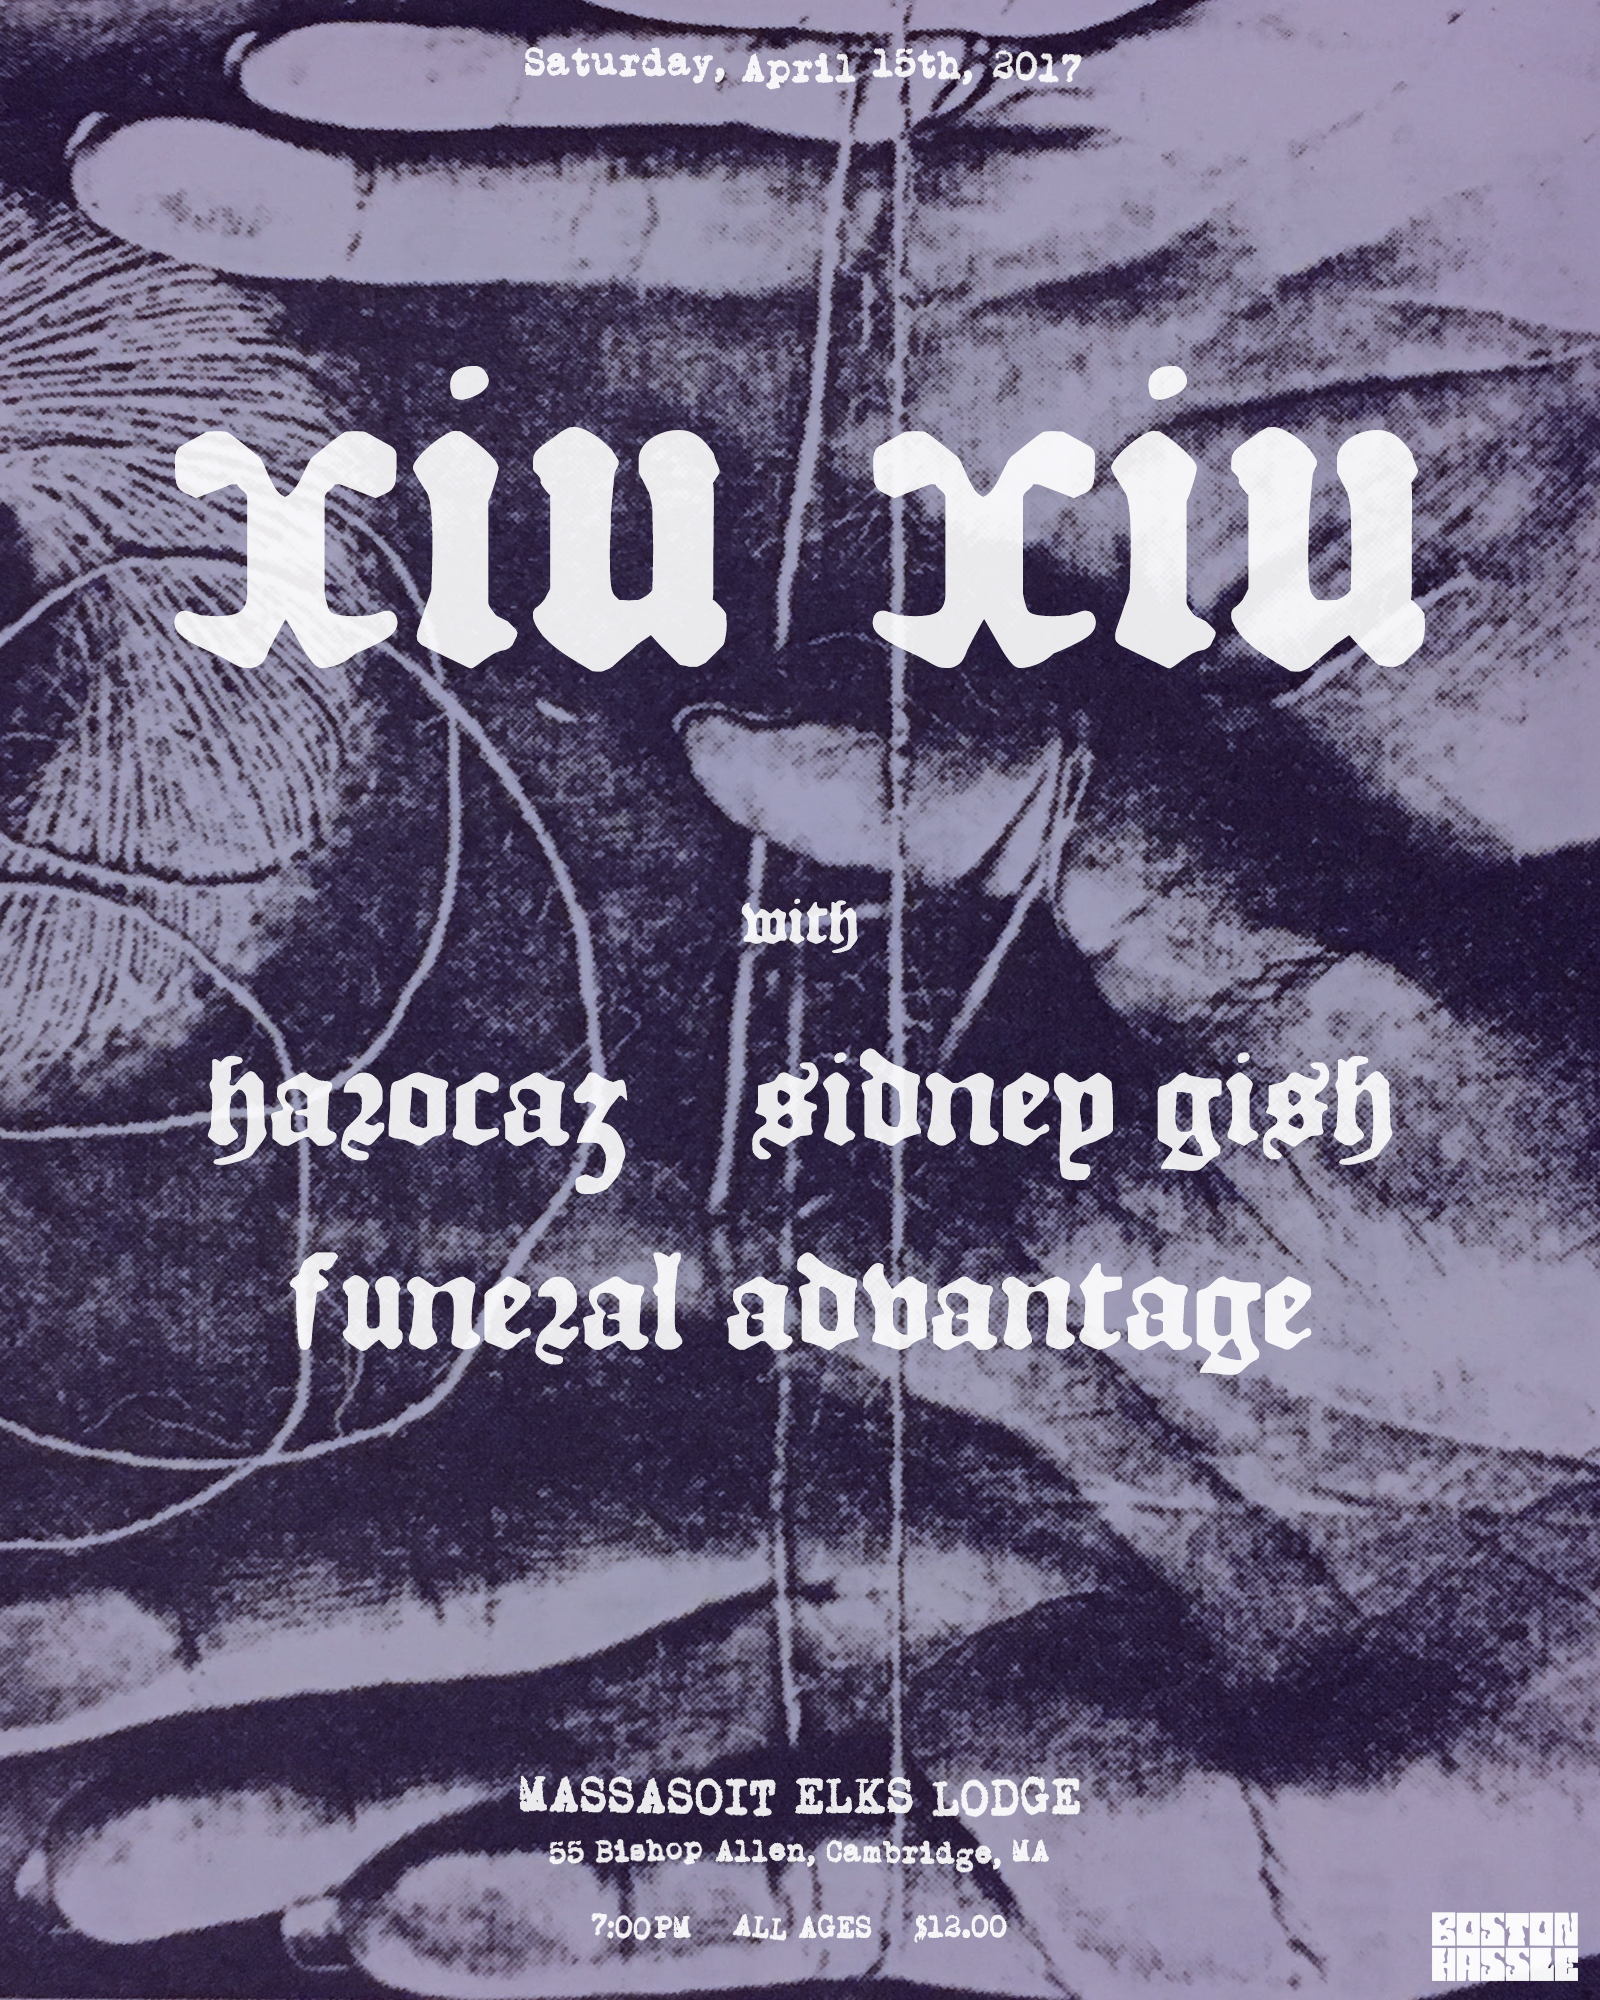 Flyer-XiuXiuFunAdv415-PurpWhite copy.jpg